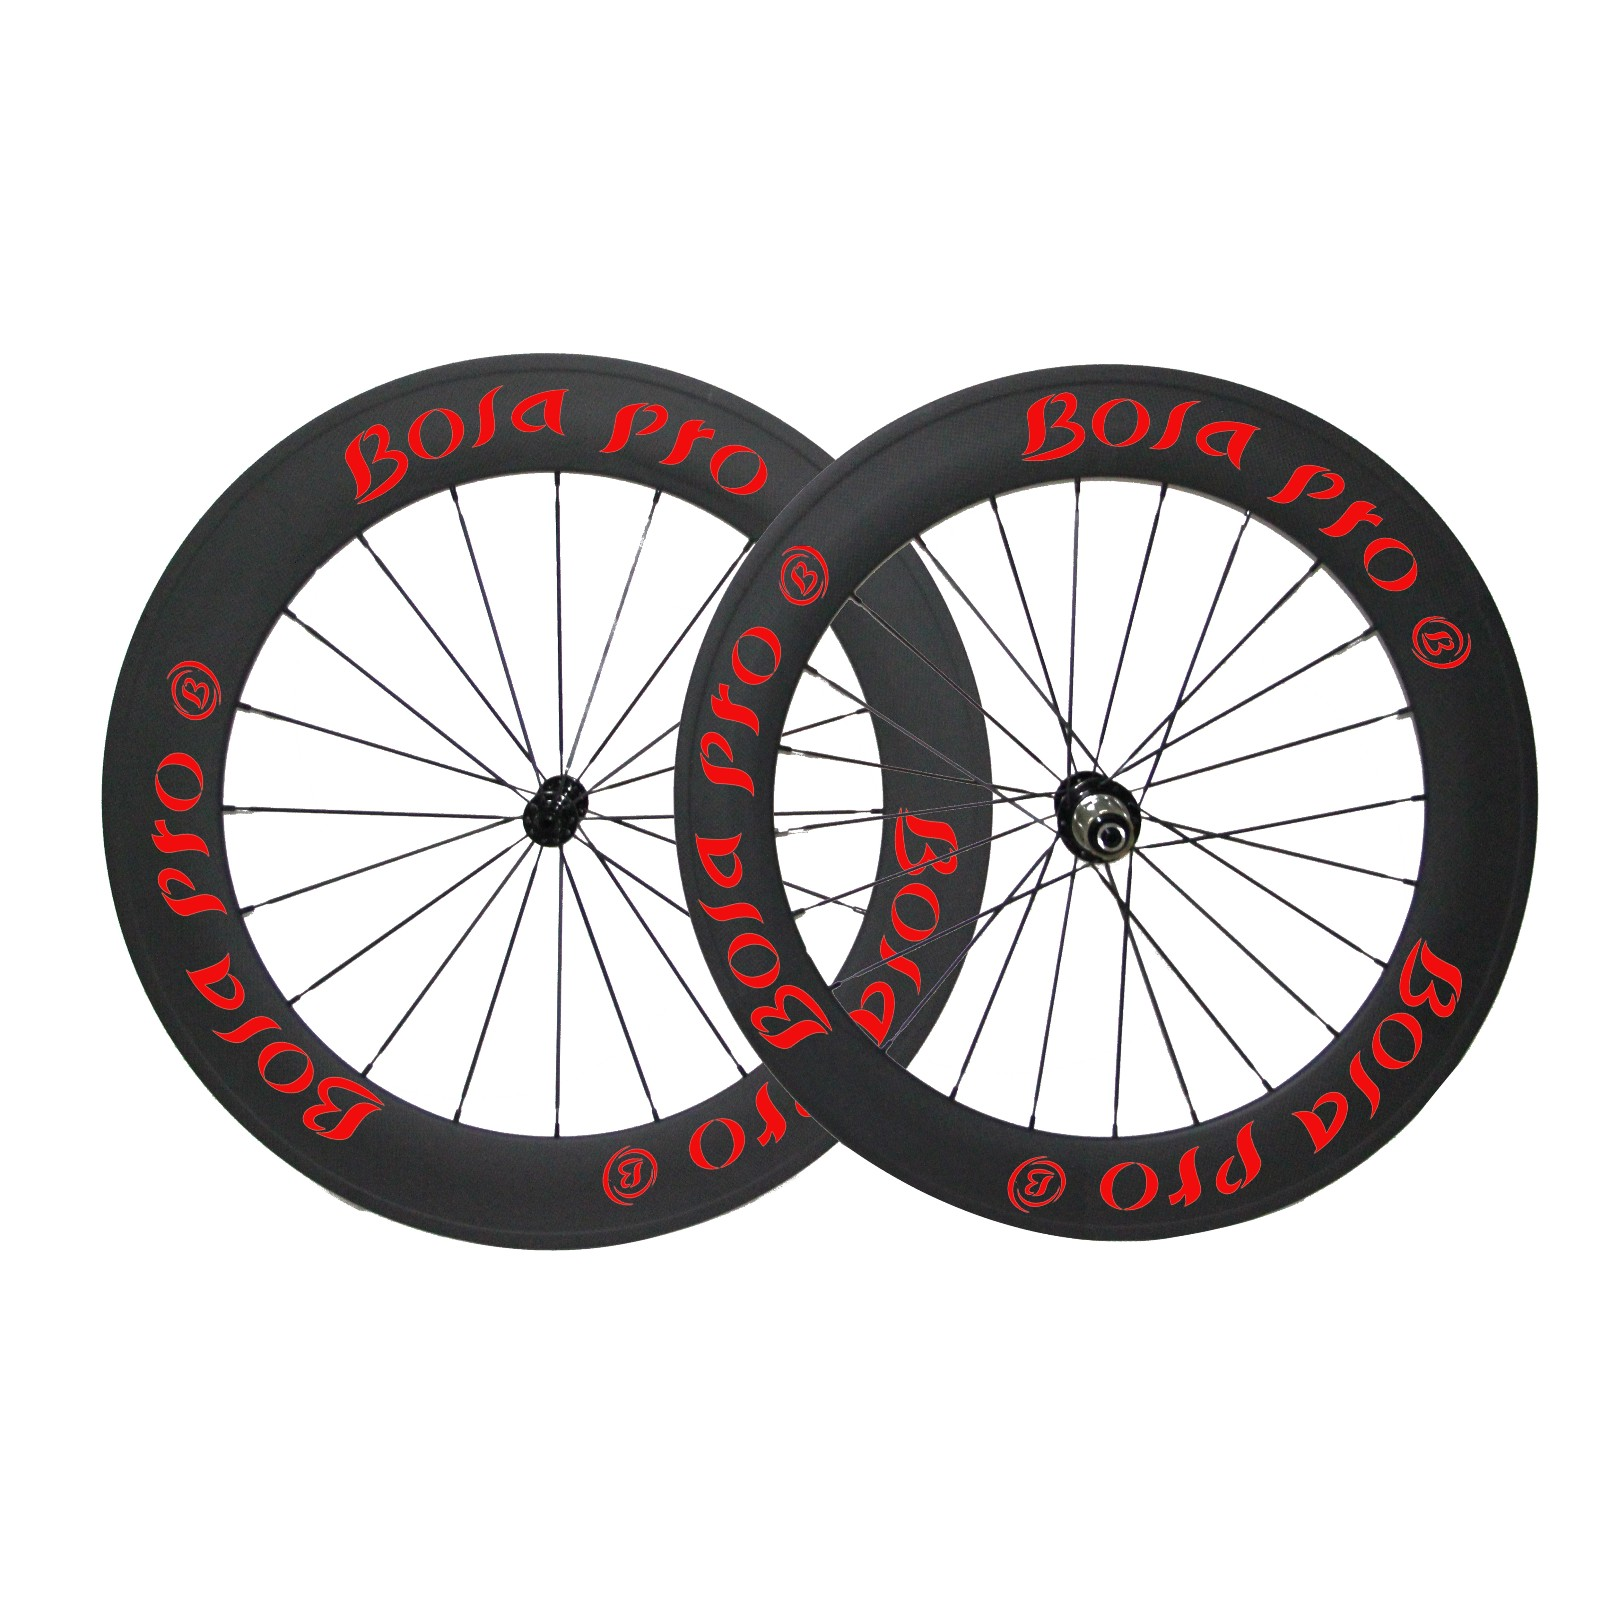 700C 60mm carbon wheelset with Powerway R13